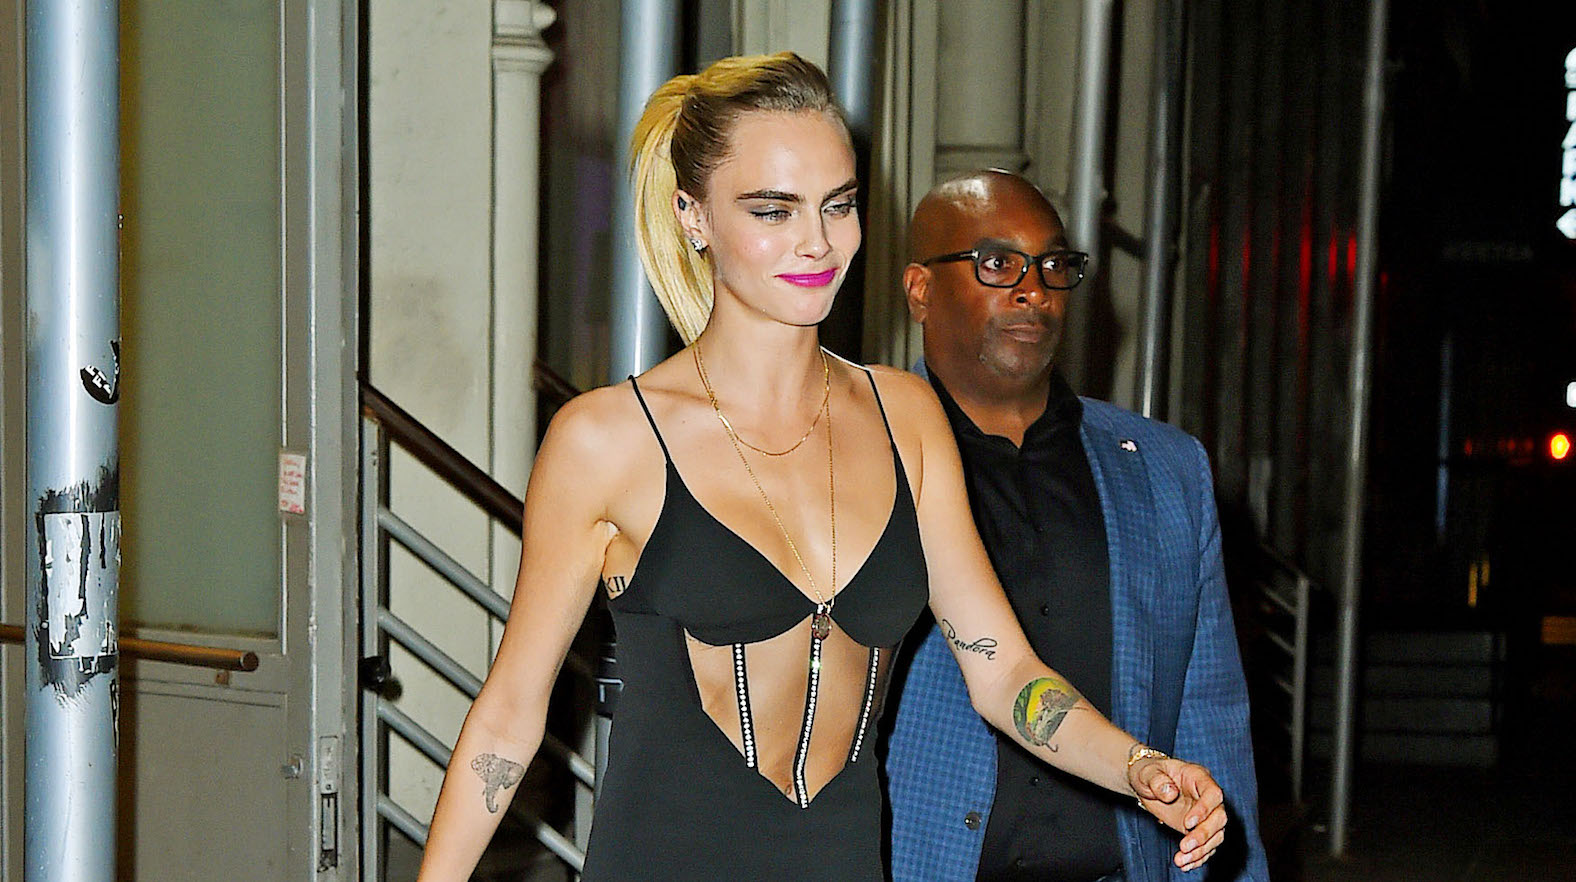 Cara Delevingne Rocks a Trendy Minidress During a Night Out in NYC